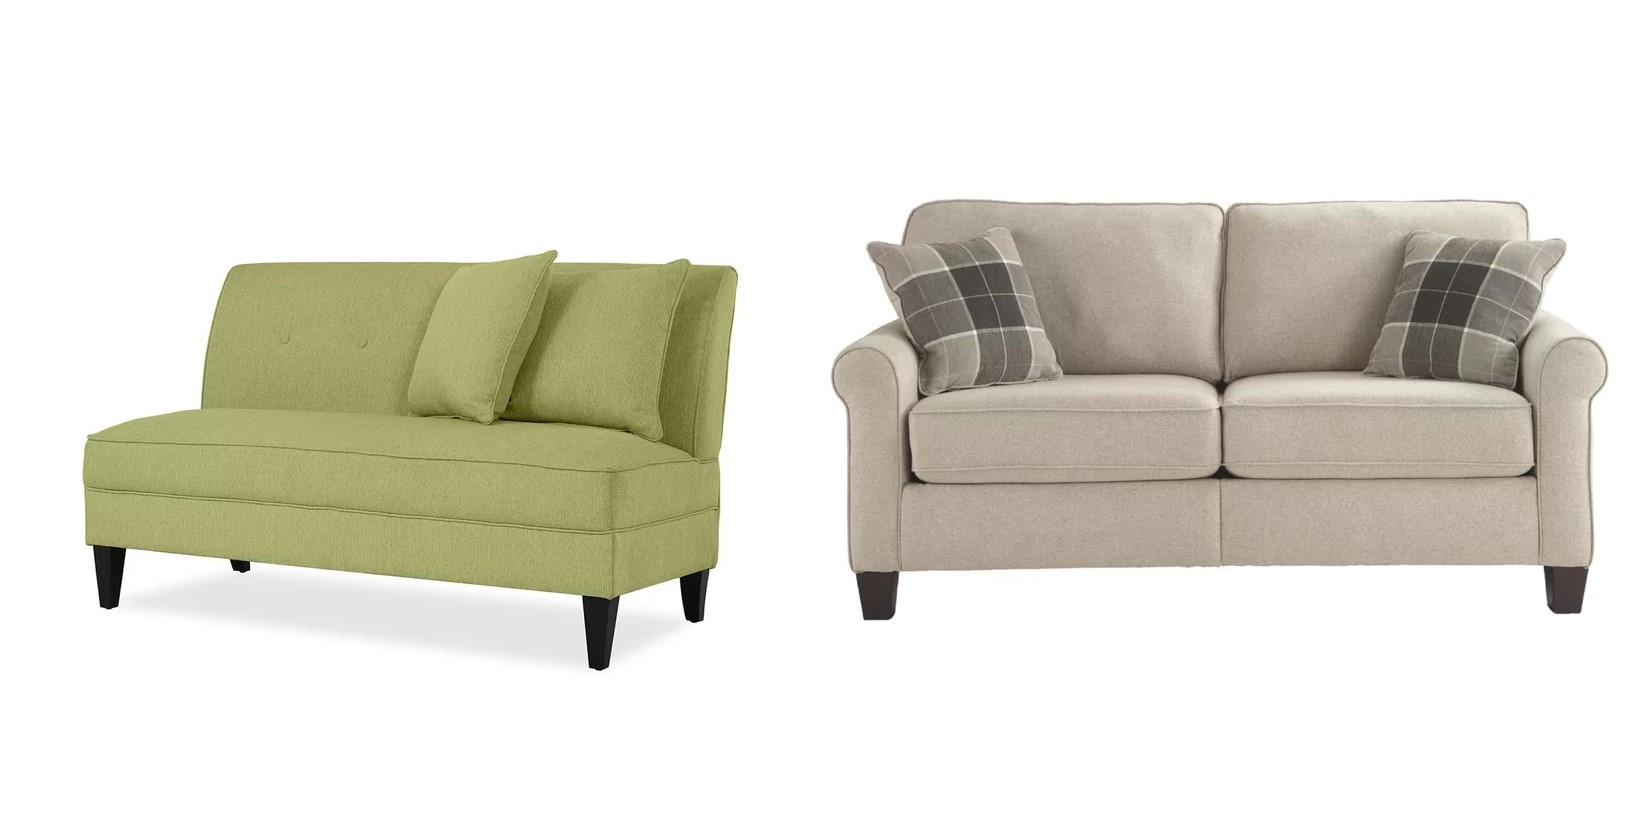 Top 7 Loveseats of 2019